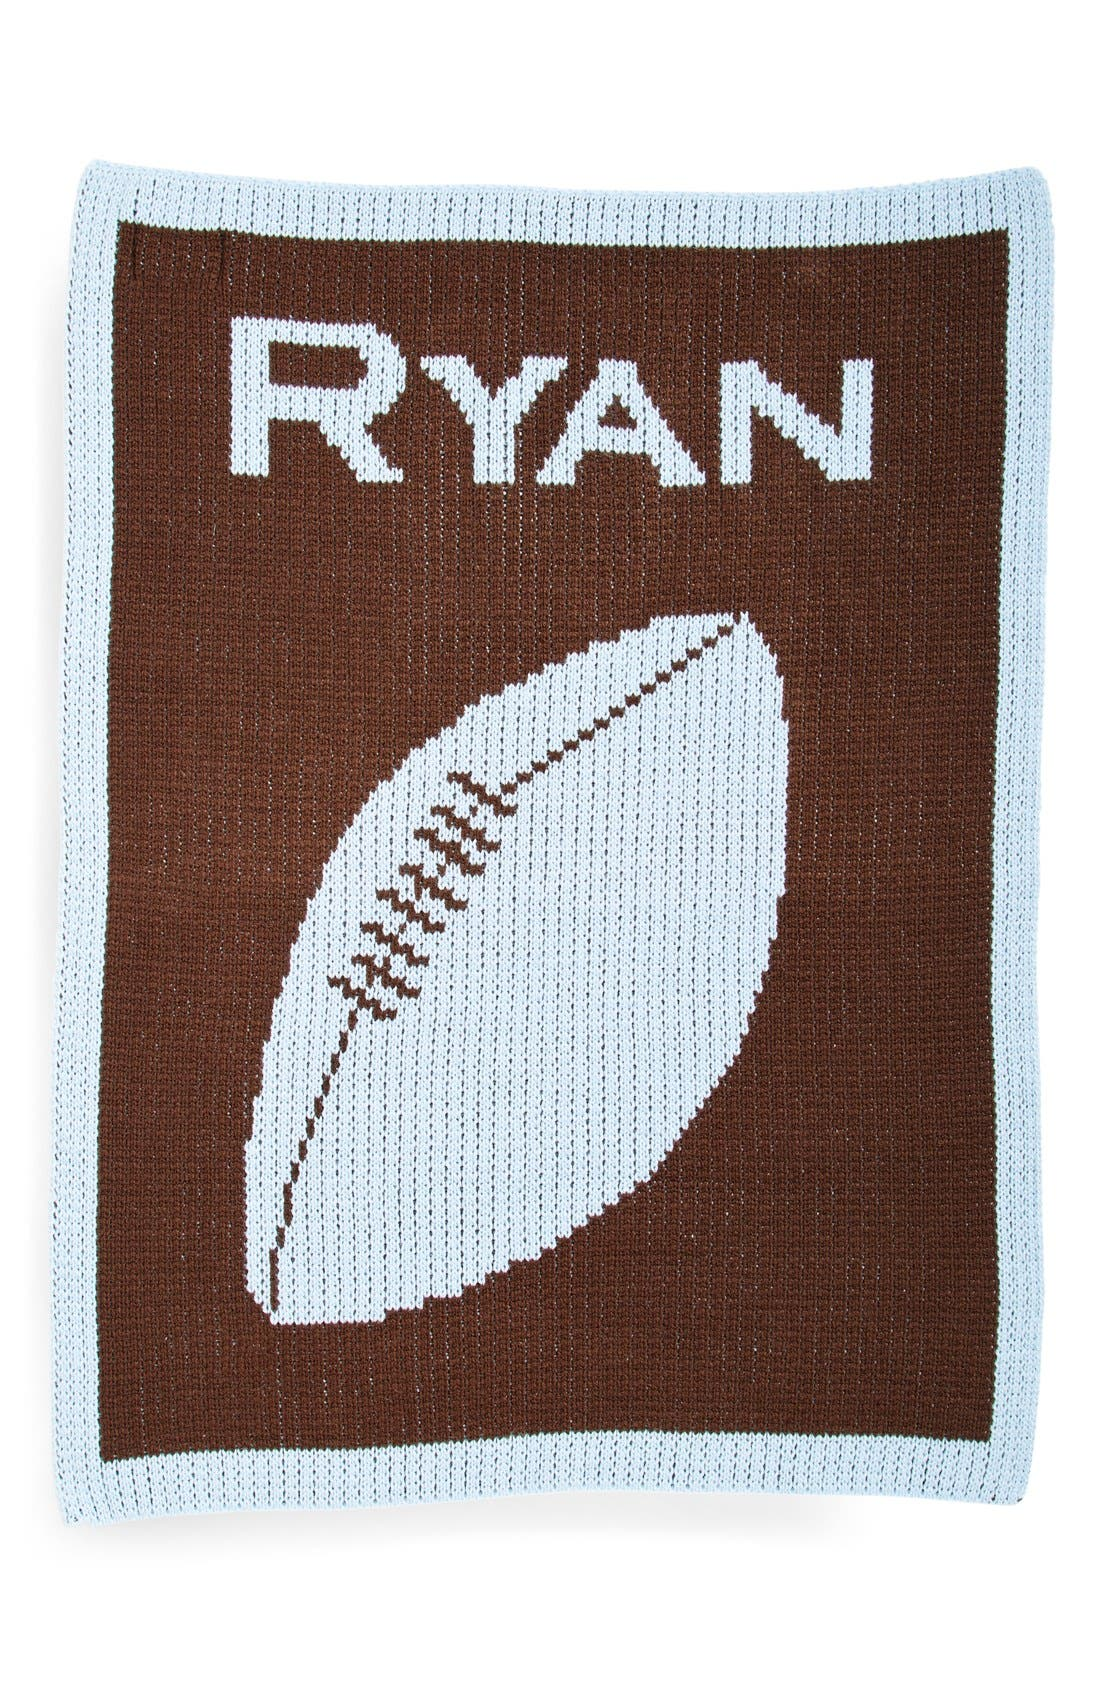 'Football' Personalized Blanket,                             Main thumbnail 1, color,                             CHOCLATE/ PALE BLUE